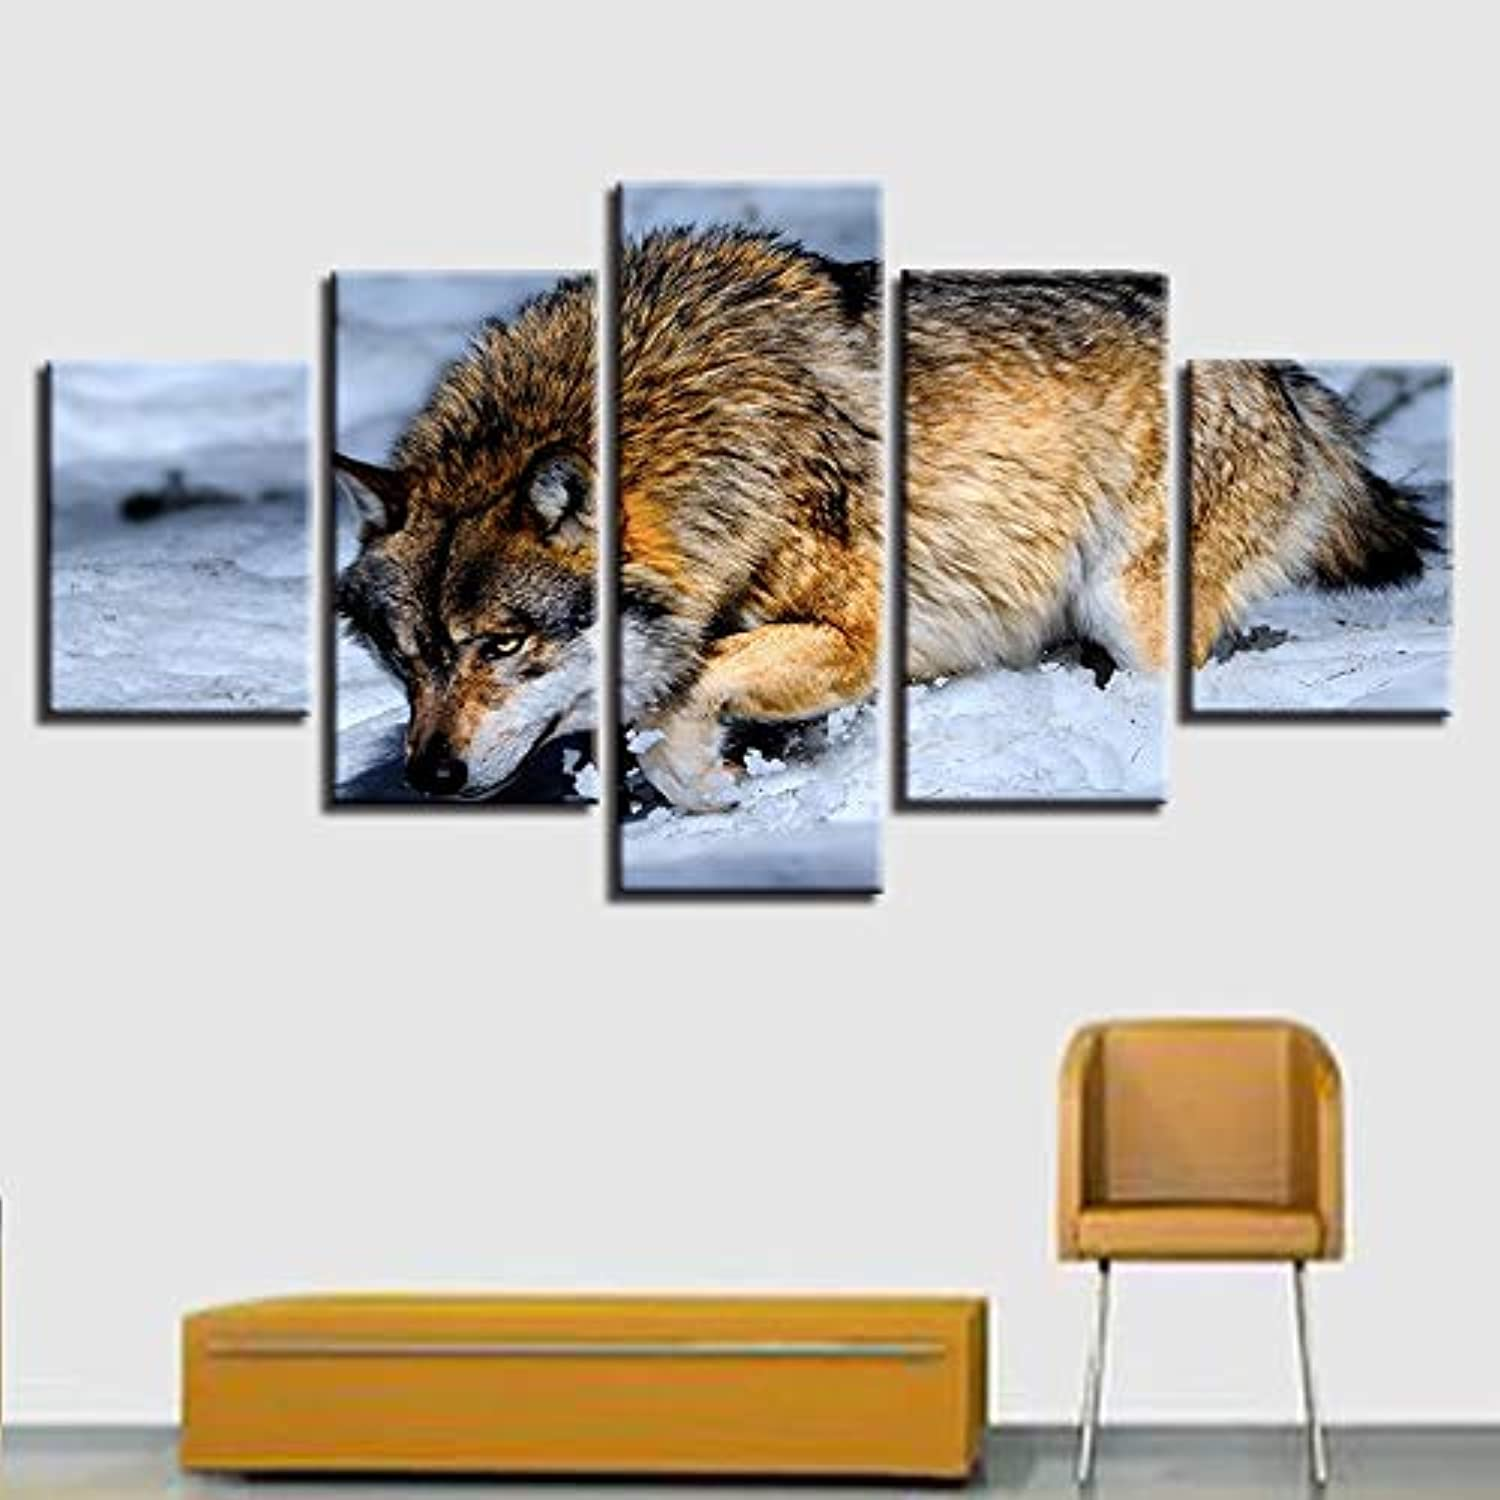 Canvas Painting Modular Pictures Wall Art Home 5 Panel Animal Snow Wolf Decoration for Living Room Modern Printing Type